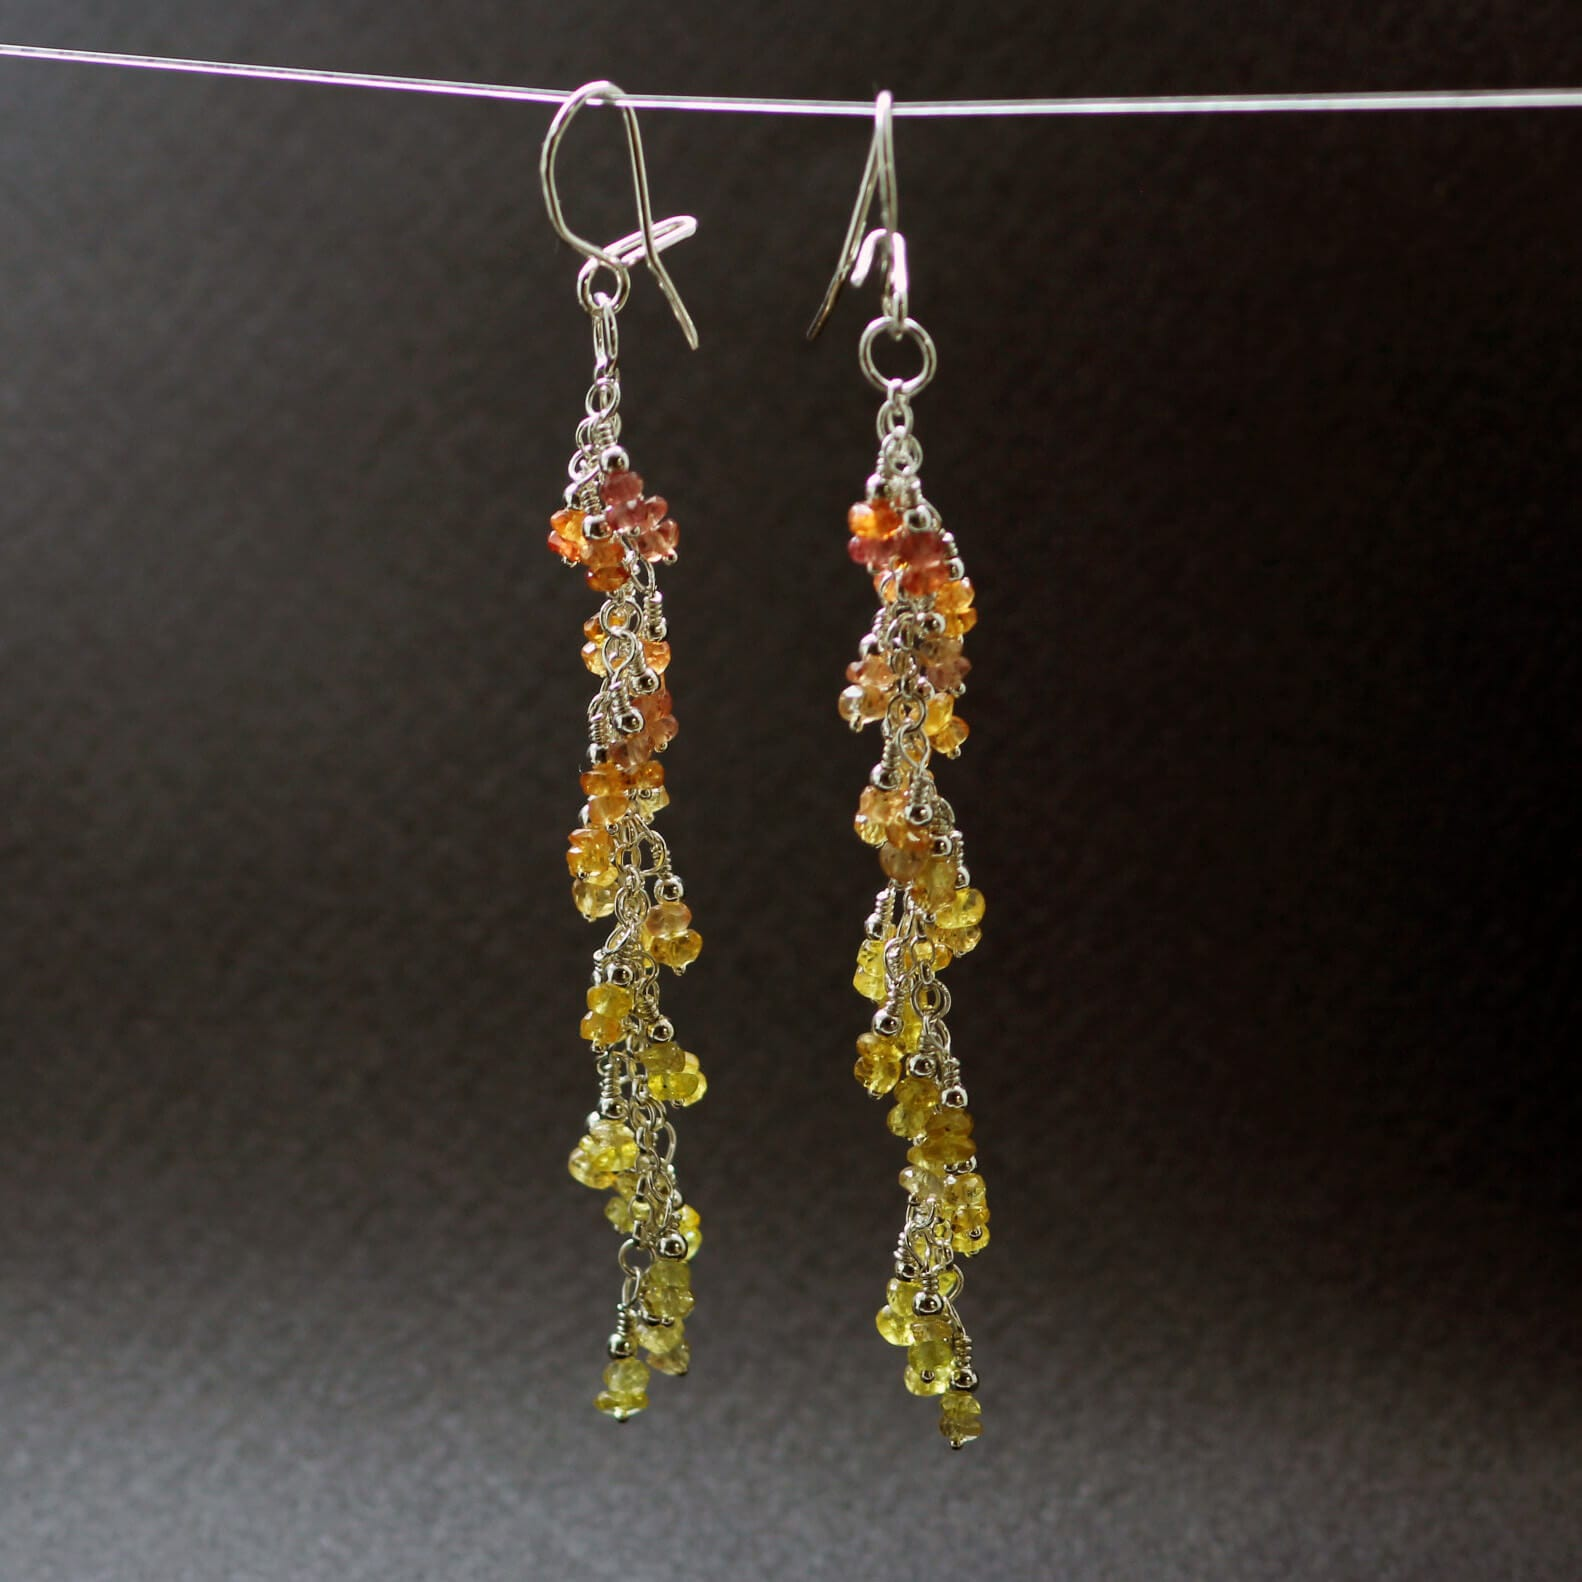 Yellow Sapphire gemstone Silver earrings, handcrafted by Sophie Saunders.